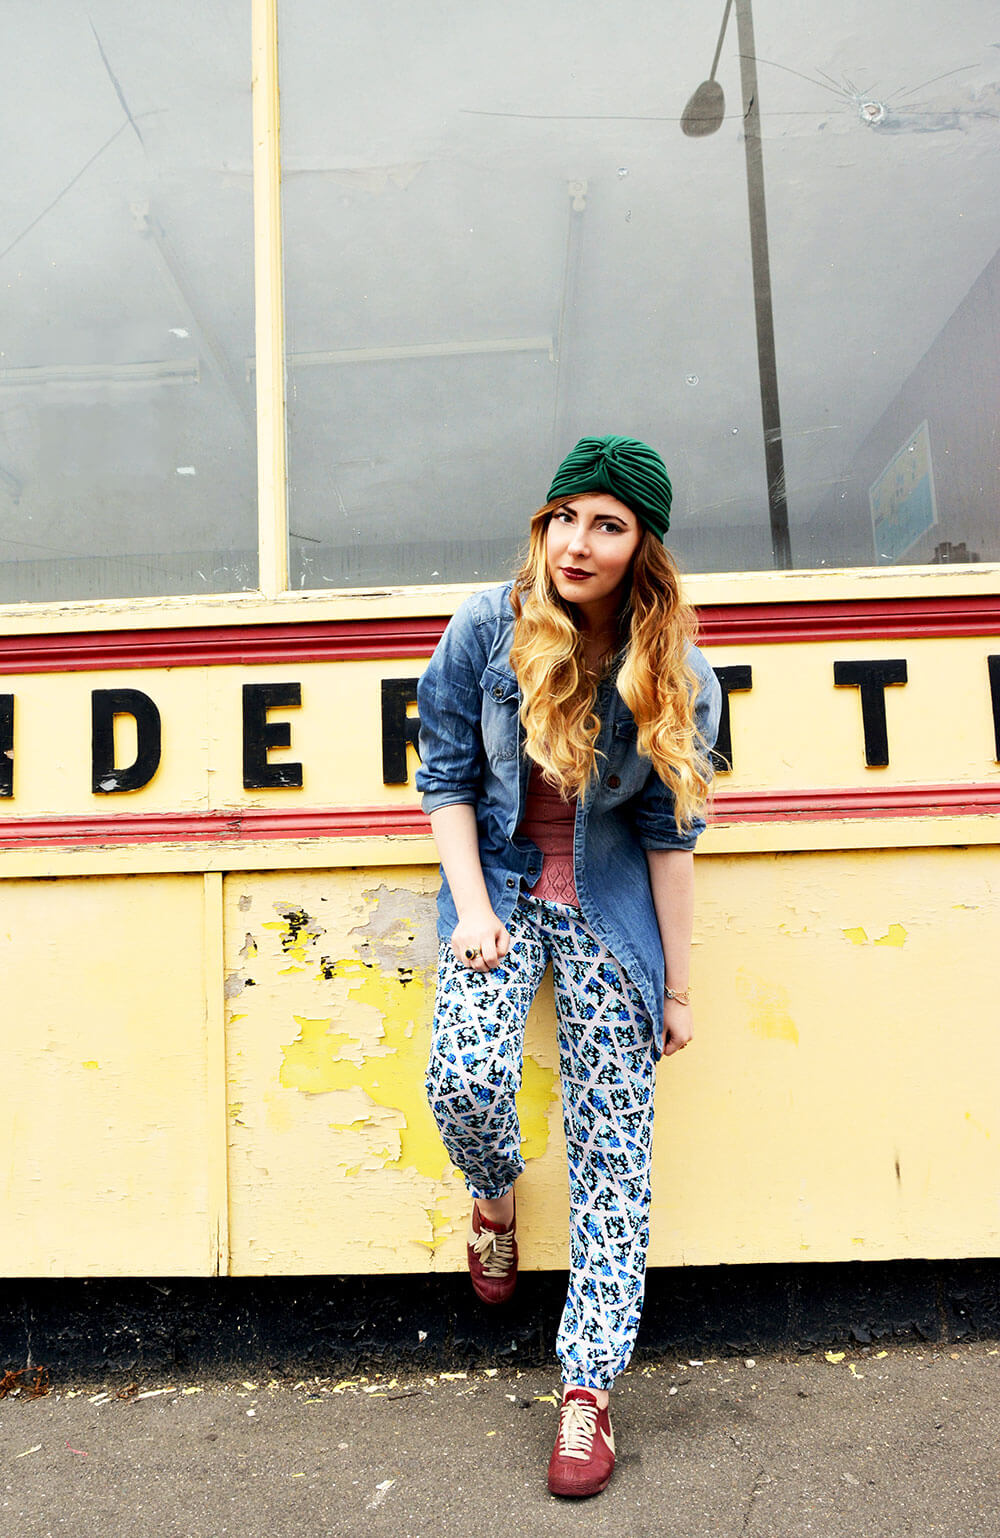 Edita in Miss Jolie trousers, Nike sneakers, Tommy Hilfiger top, Marina Rozen necklace, Bf's denim shirt and gold jewellery 1